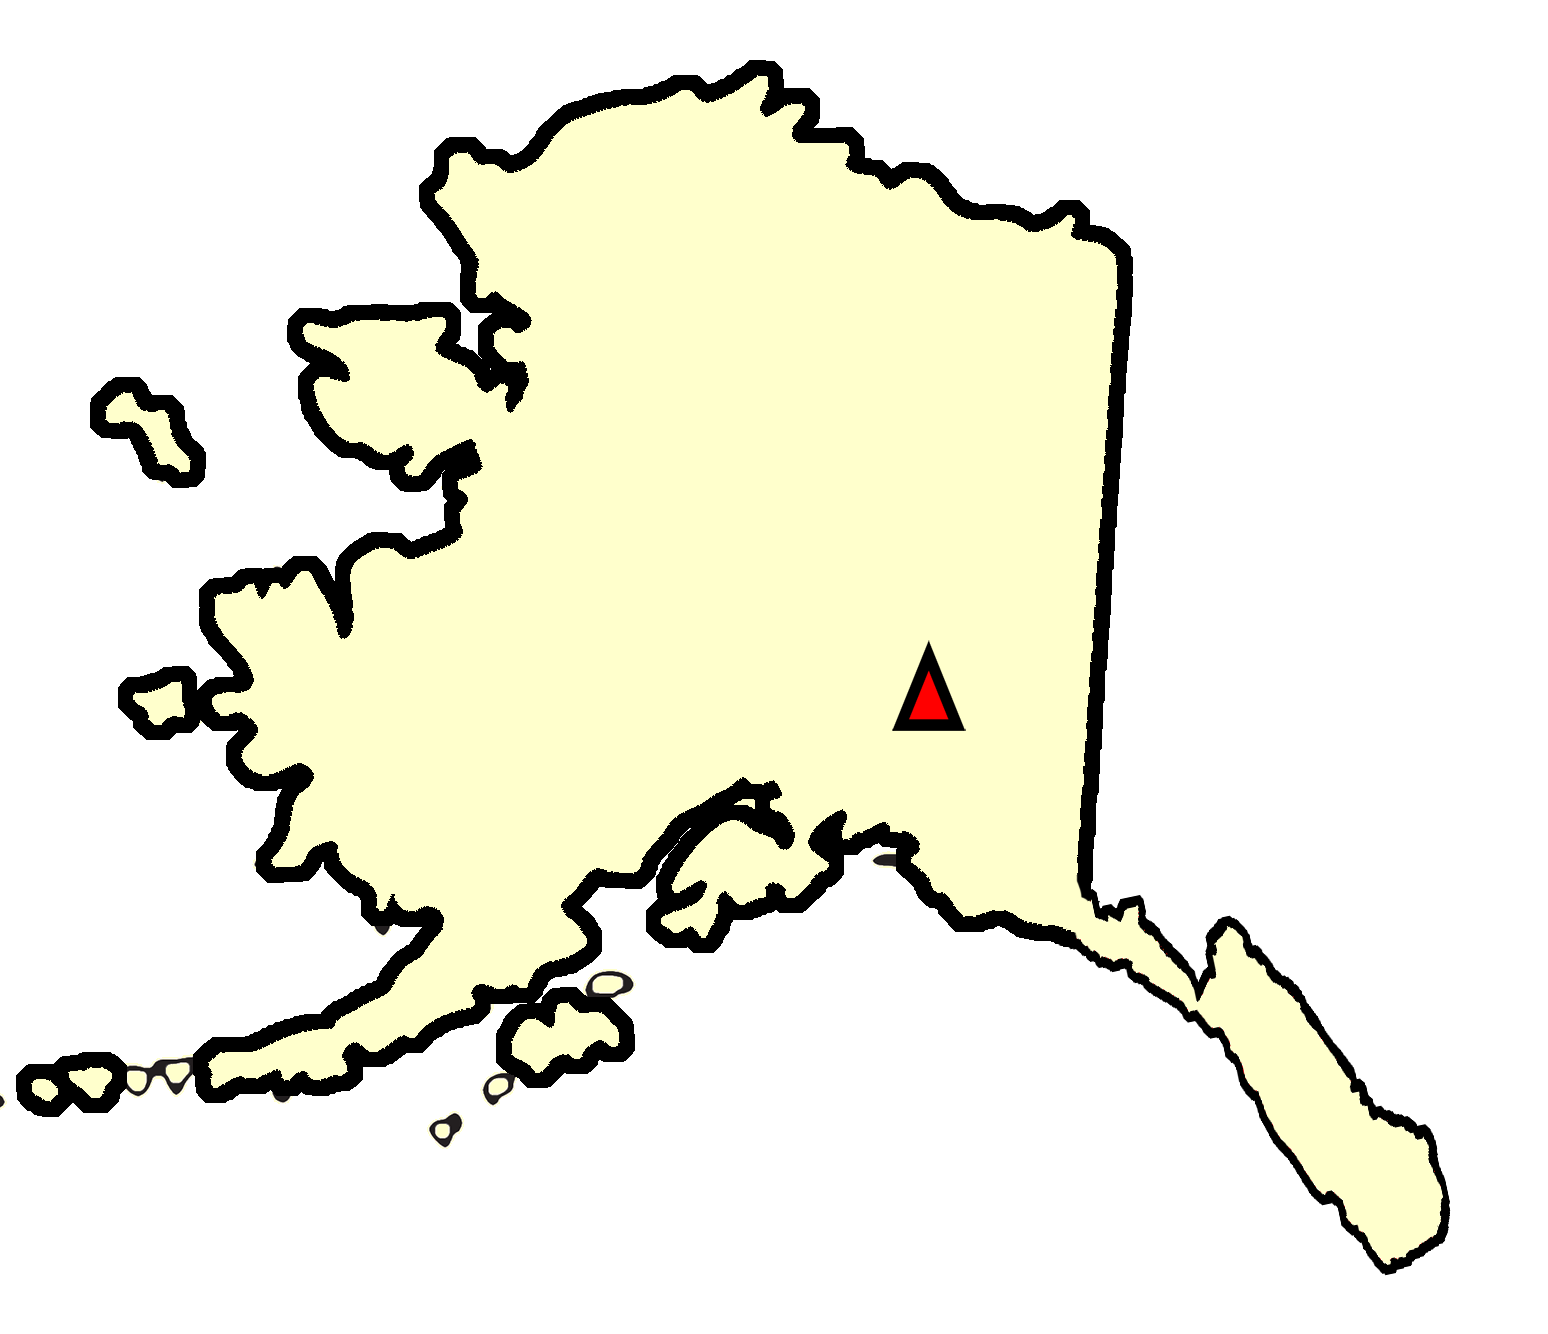 State map location for AK Glennallen